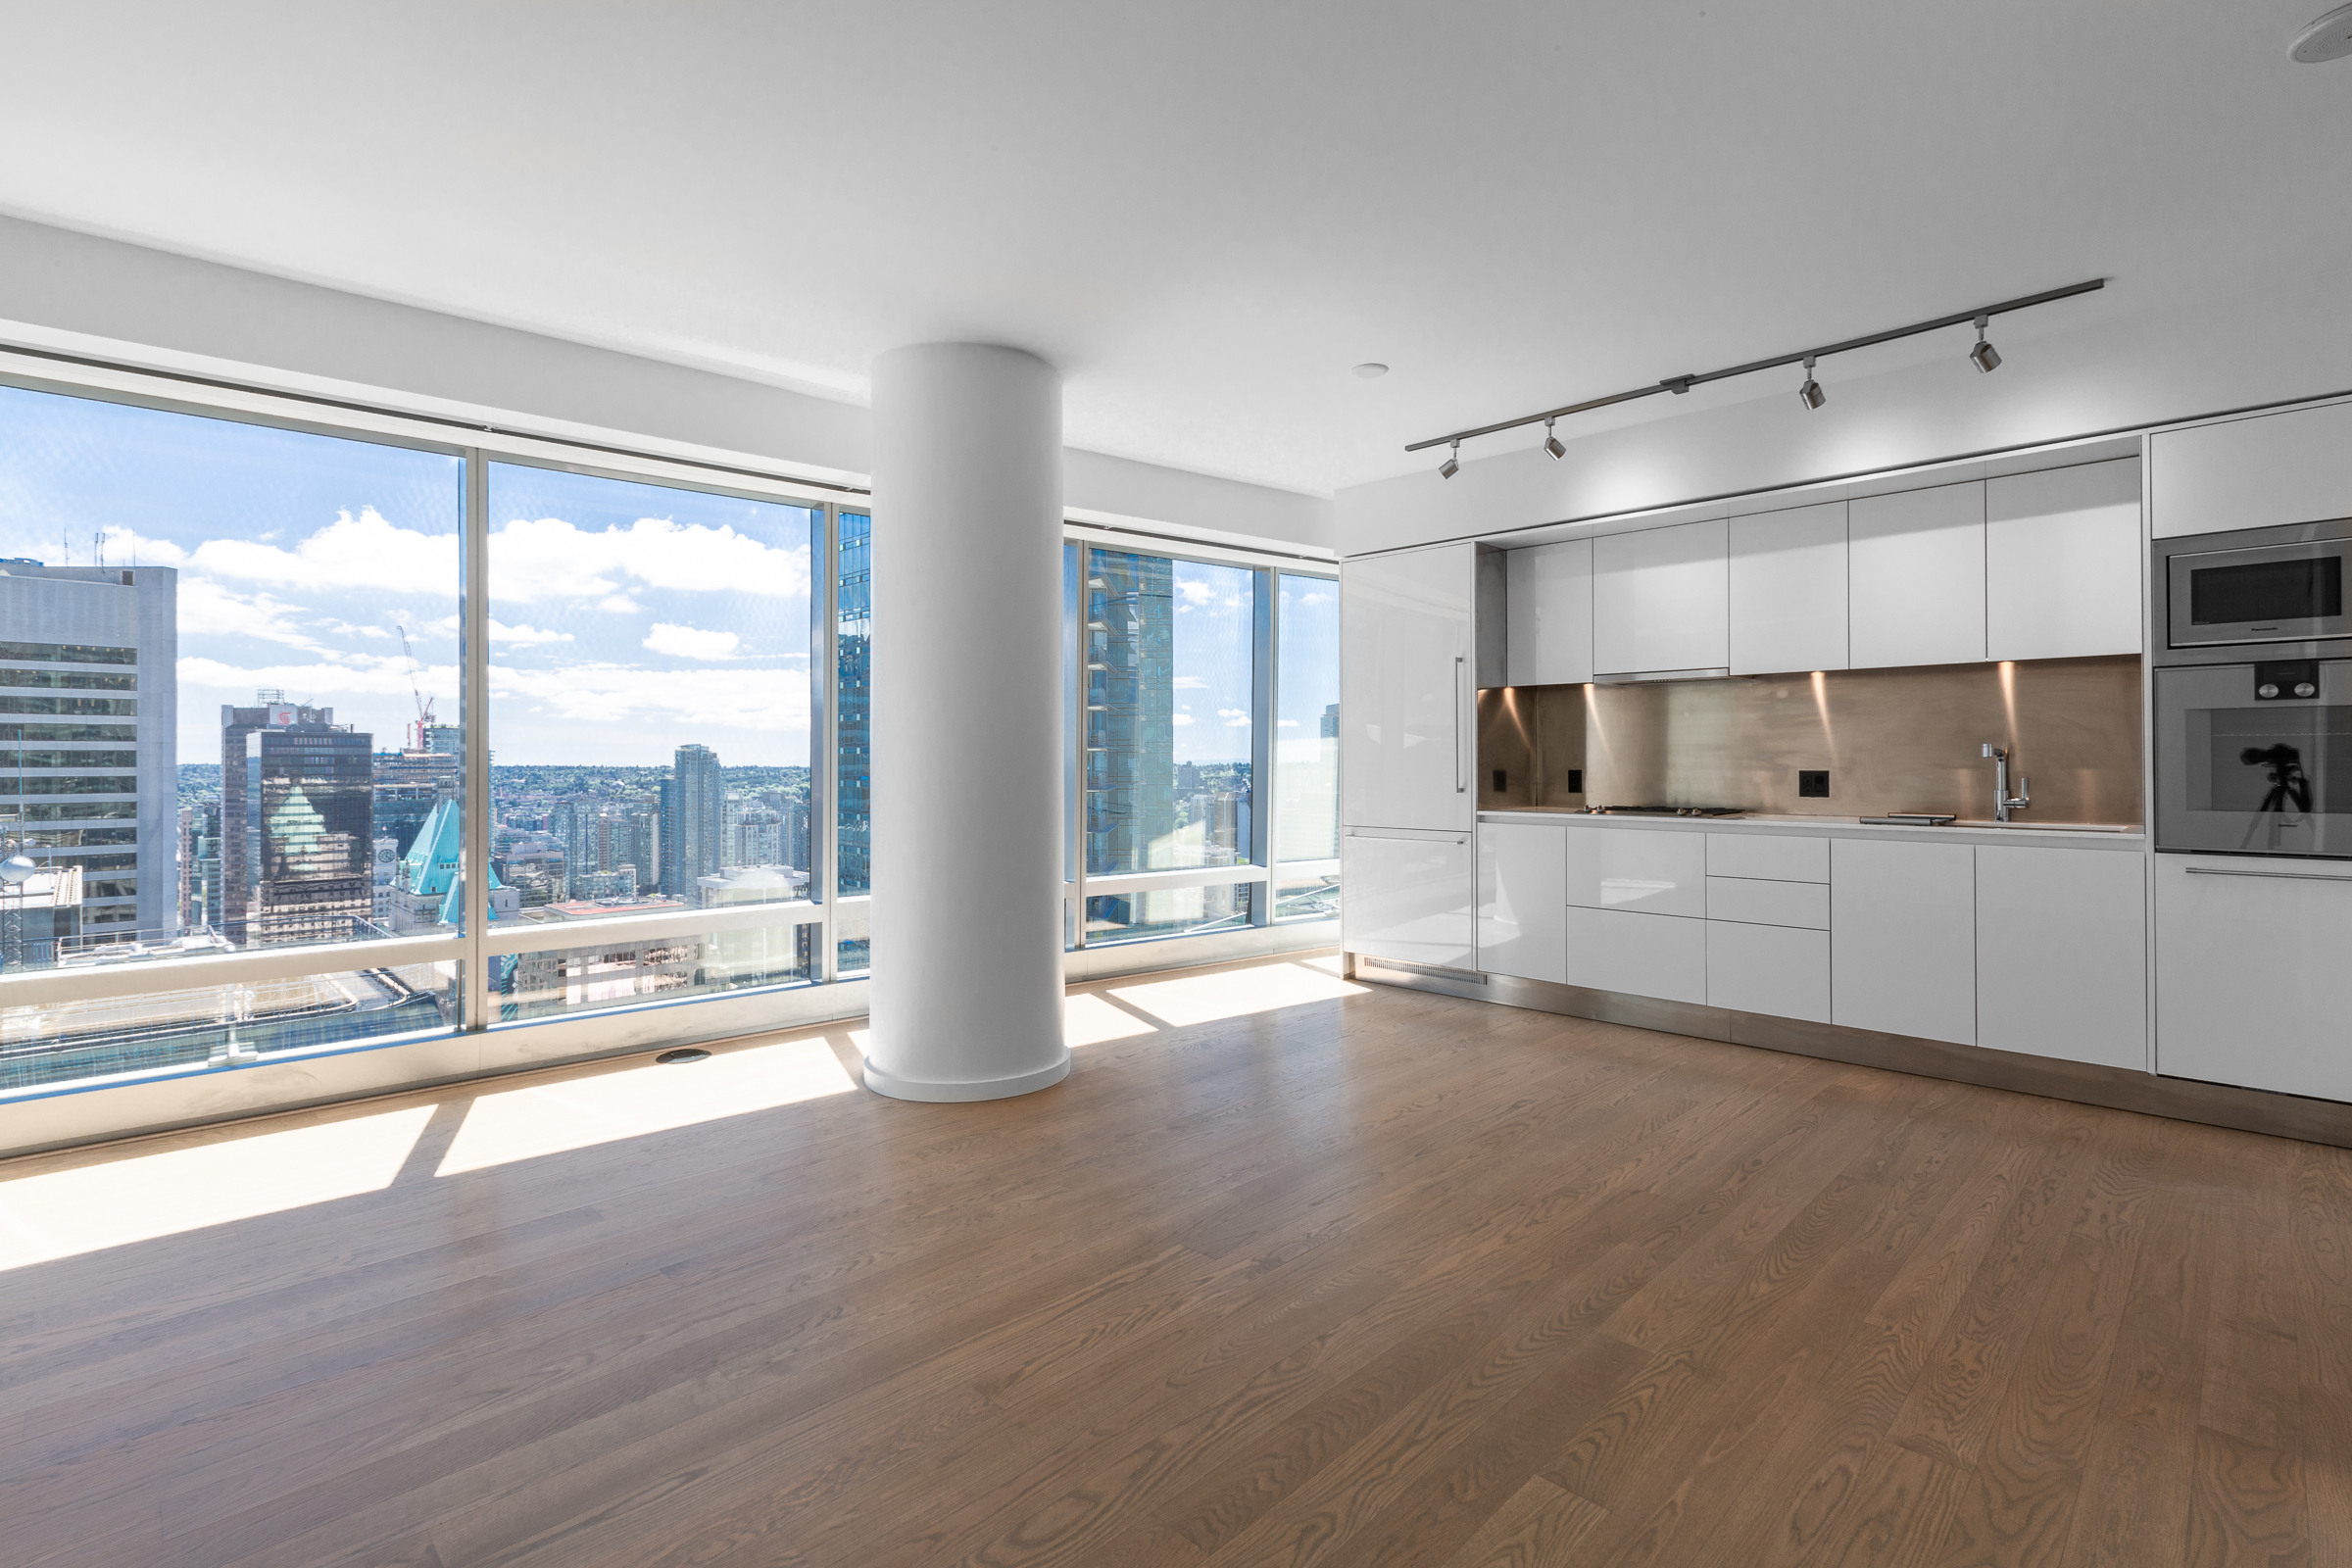 UNFURNISHED DELUXE ONE BEDROOM AND DEN PROPERTY IN THE LUXURIOUS TRUMP RESIDENCES VANCOUVER